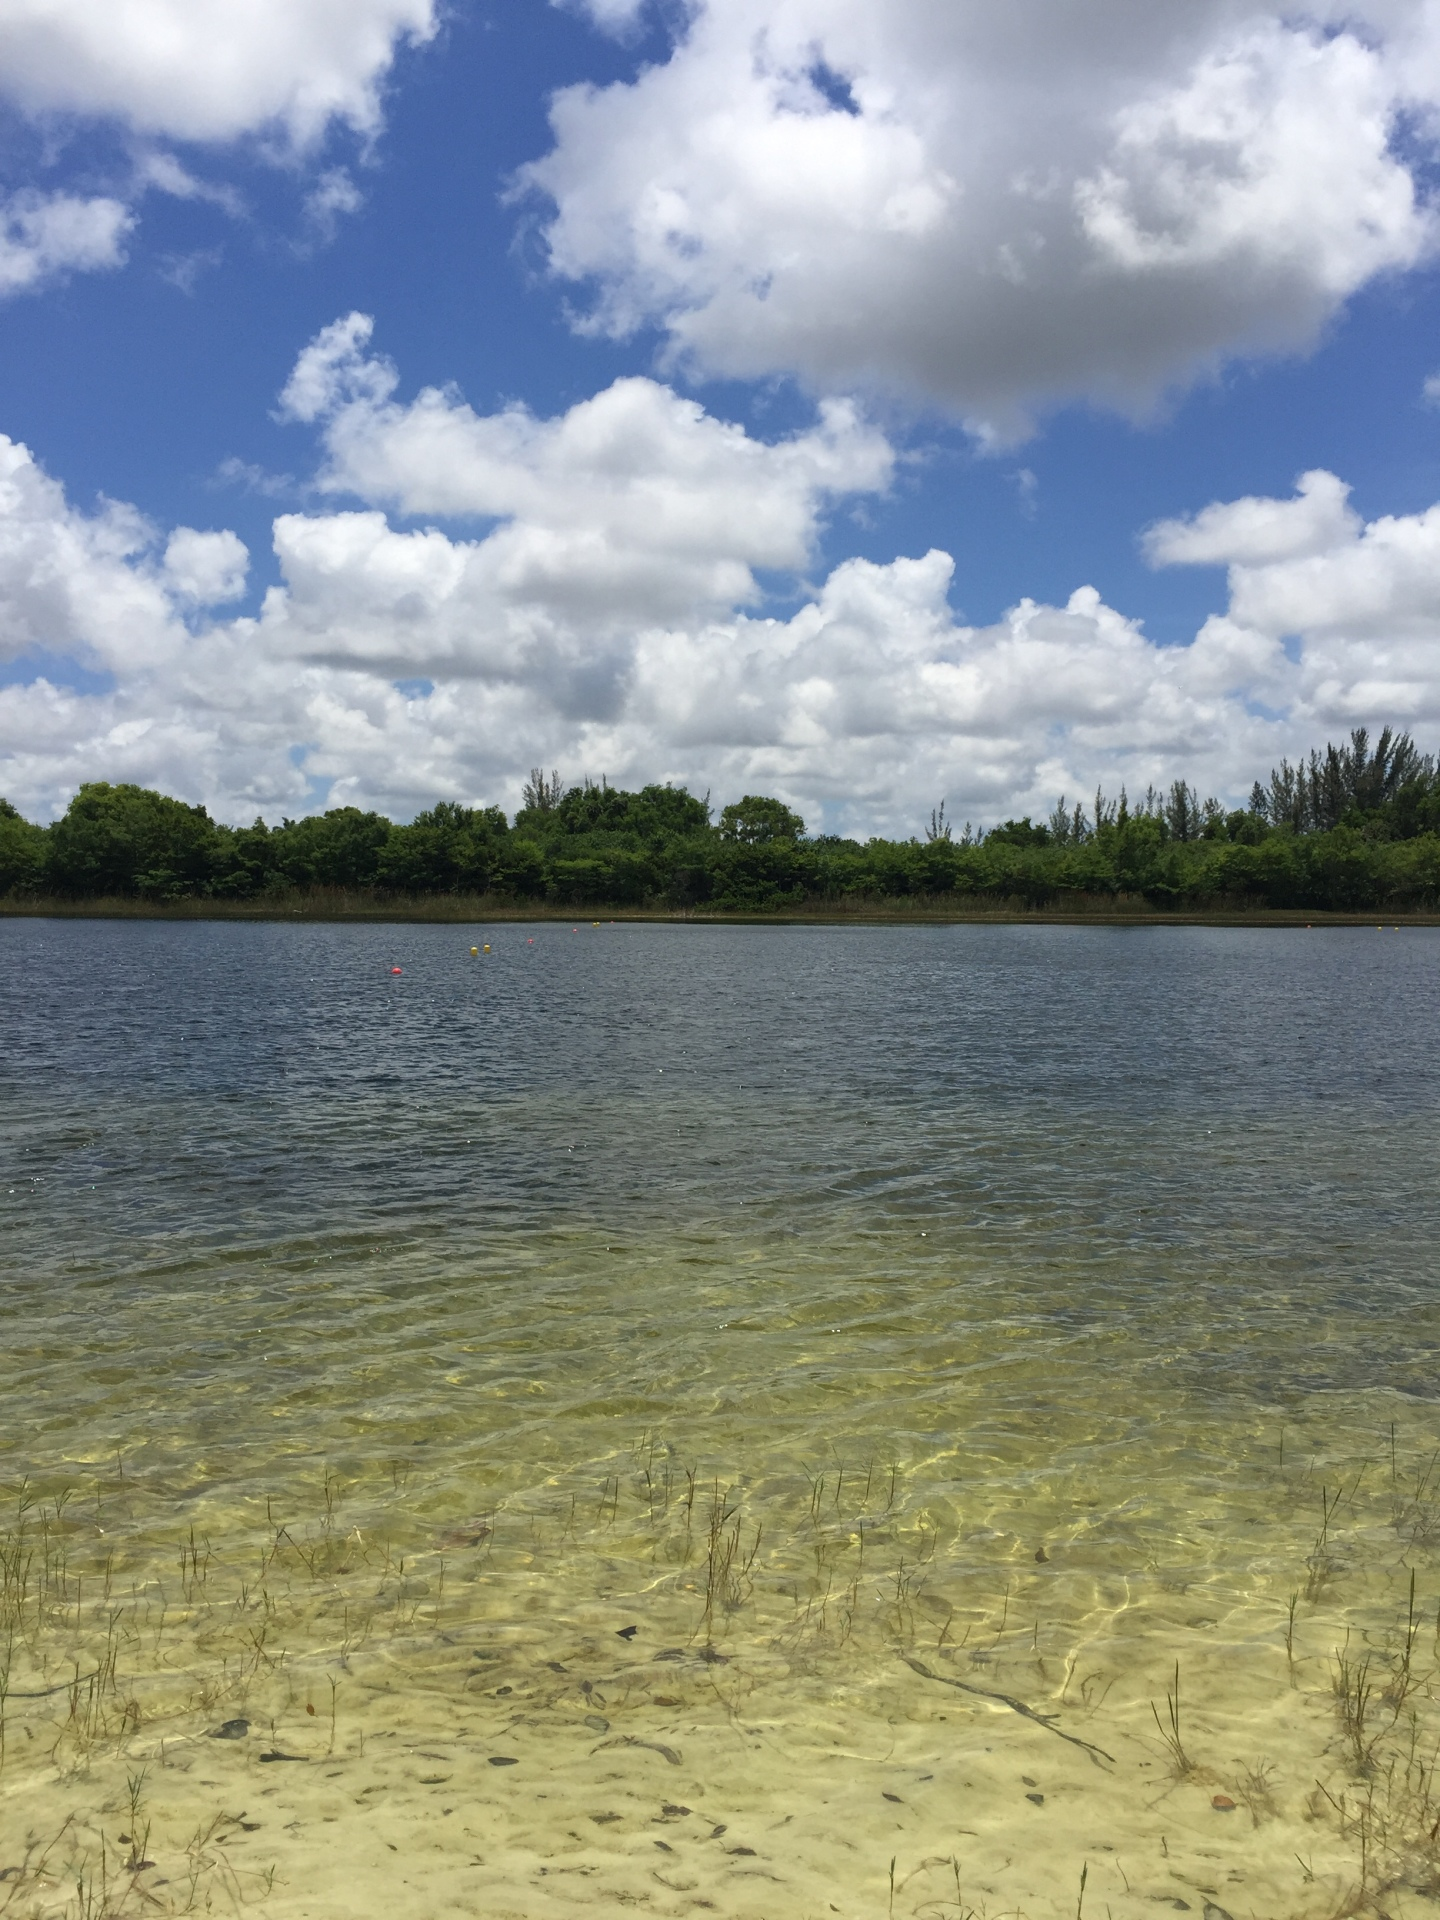 This is a photo I took while enjoying a peaceful nature walk in Boca South County Regional Park.